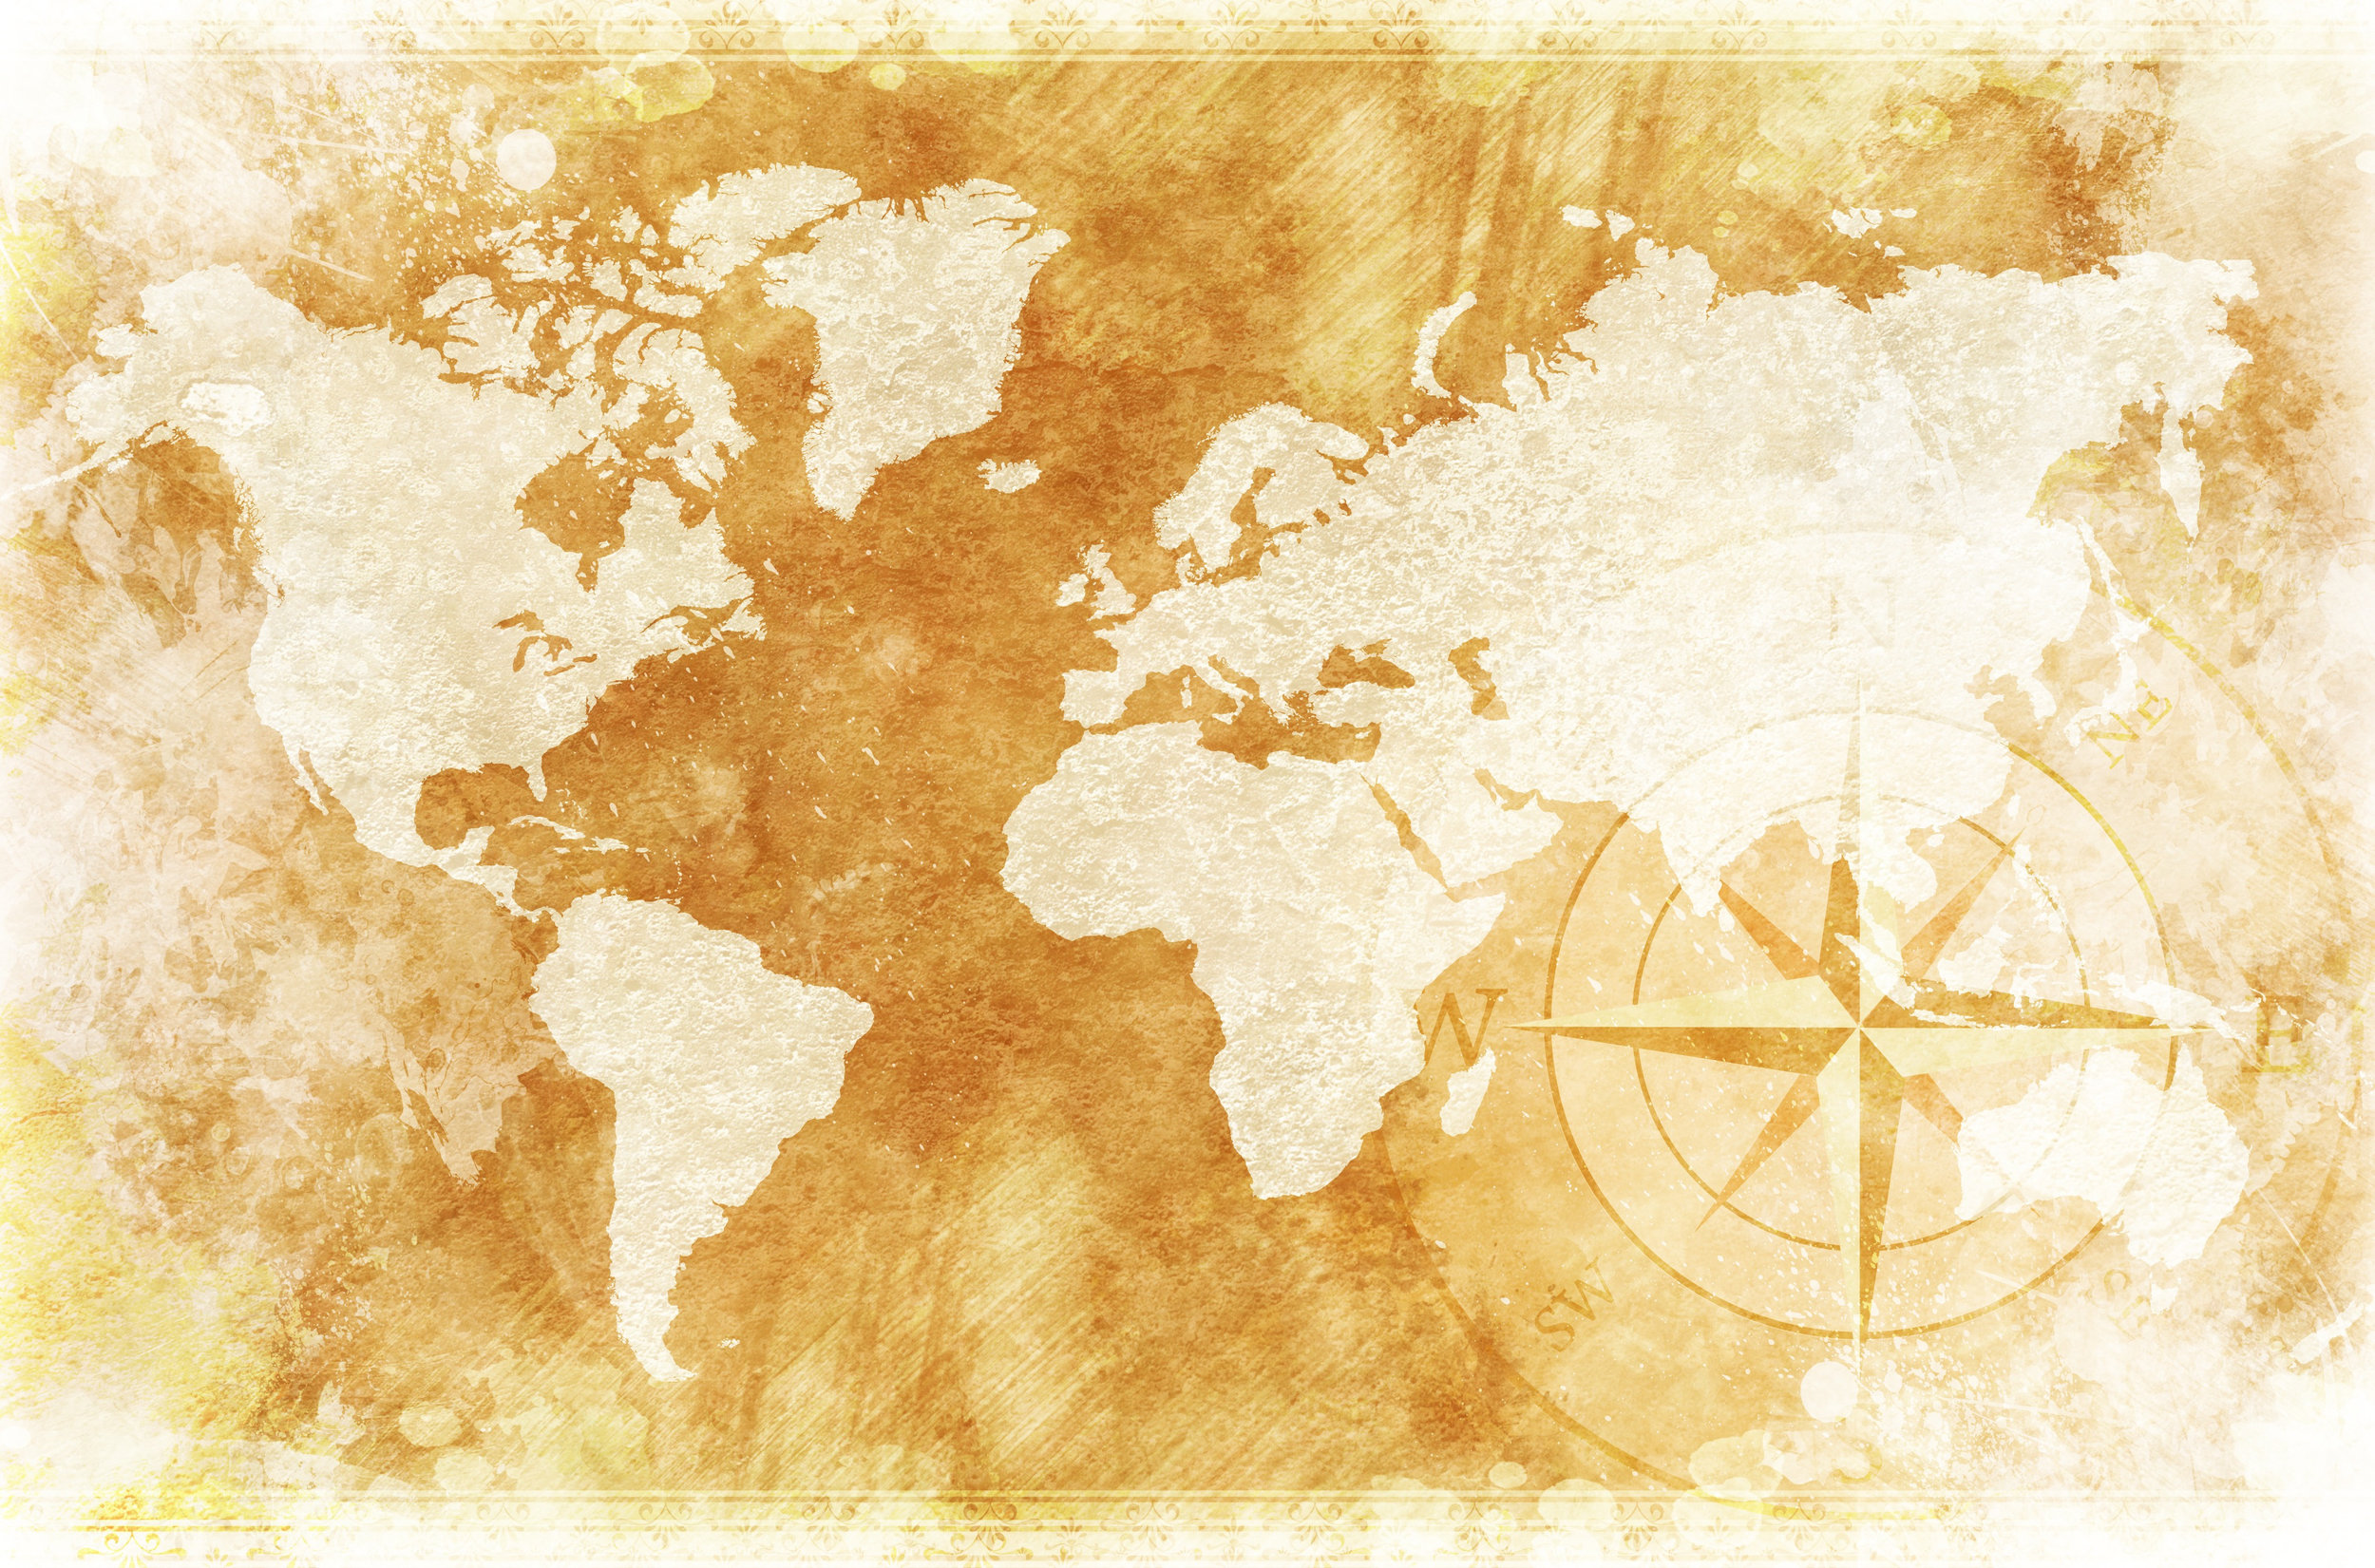 rustic-world-map_zkFp-Yrd.jpg